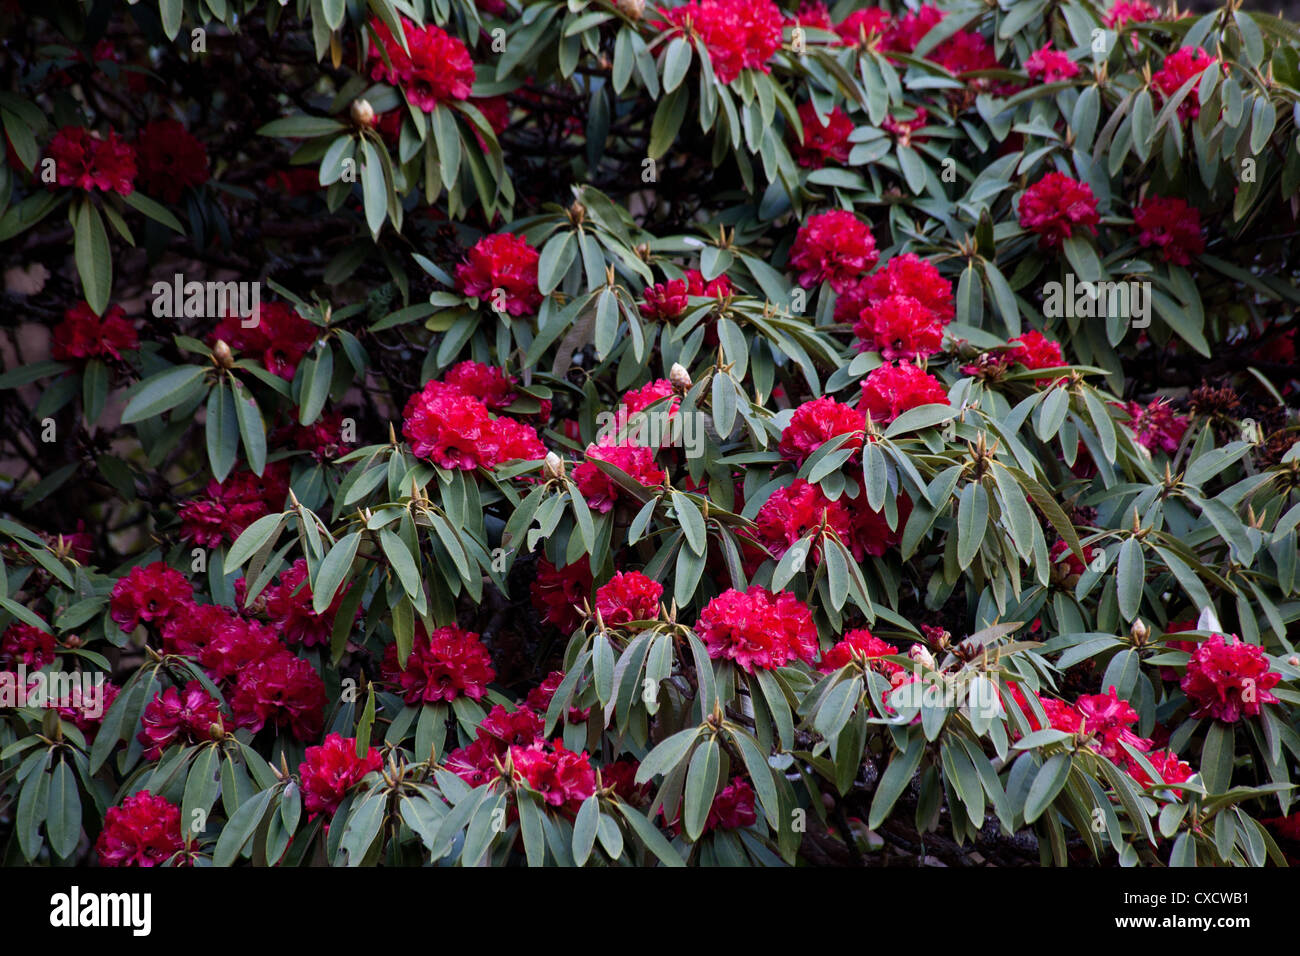 Red Rhododendrons, Rhododendron arboreum, Nepal  - Stock Image